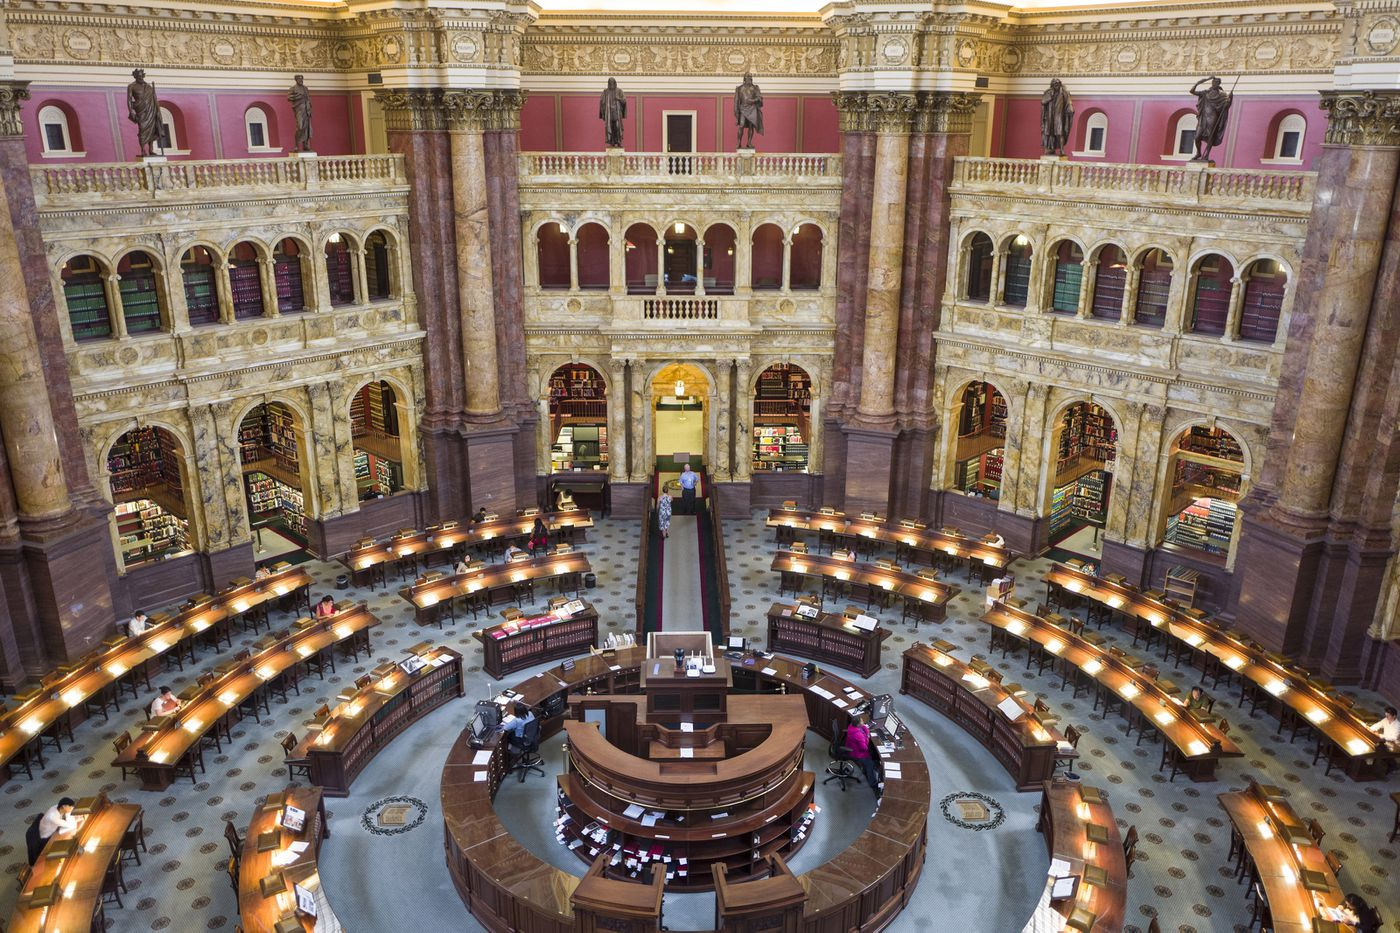 The Library of Congress is operating as normal during the government shutdown, because it is funded through the Legislative Branch. (Photo: Nikki Kahn / Washington Post)